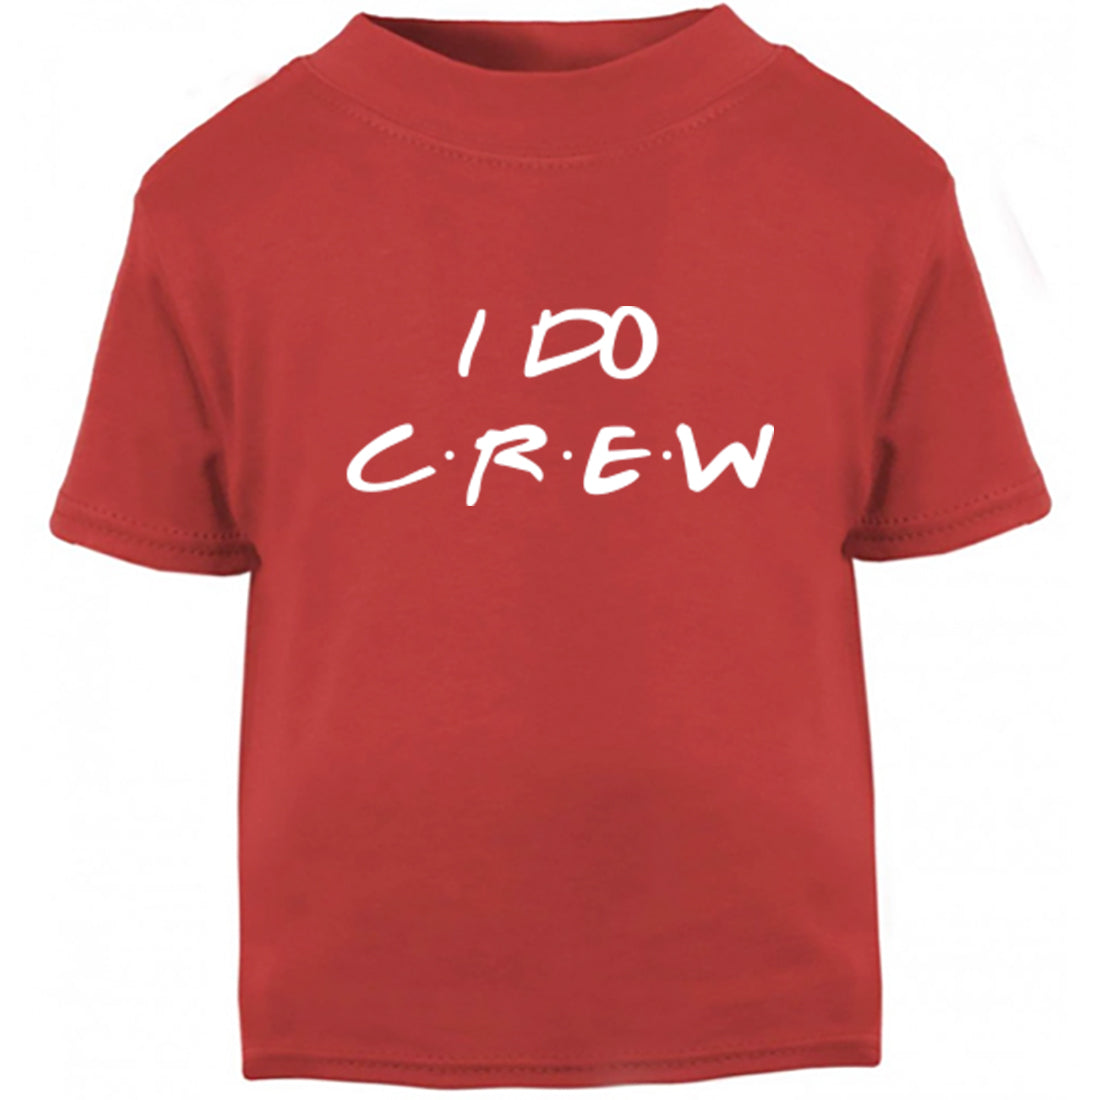 I Do Crew Childrens Ages 3/4-12/14 Unisex Fit T-Shirt K2381 - Illustrated Identity Ltd.